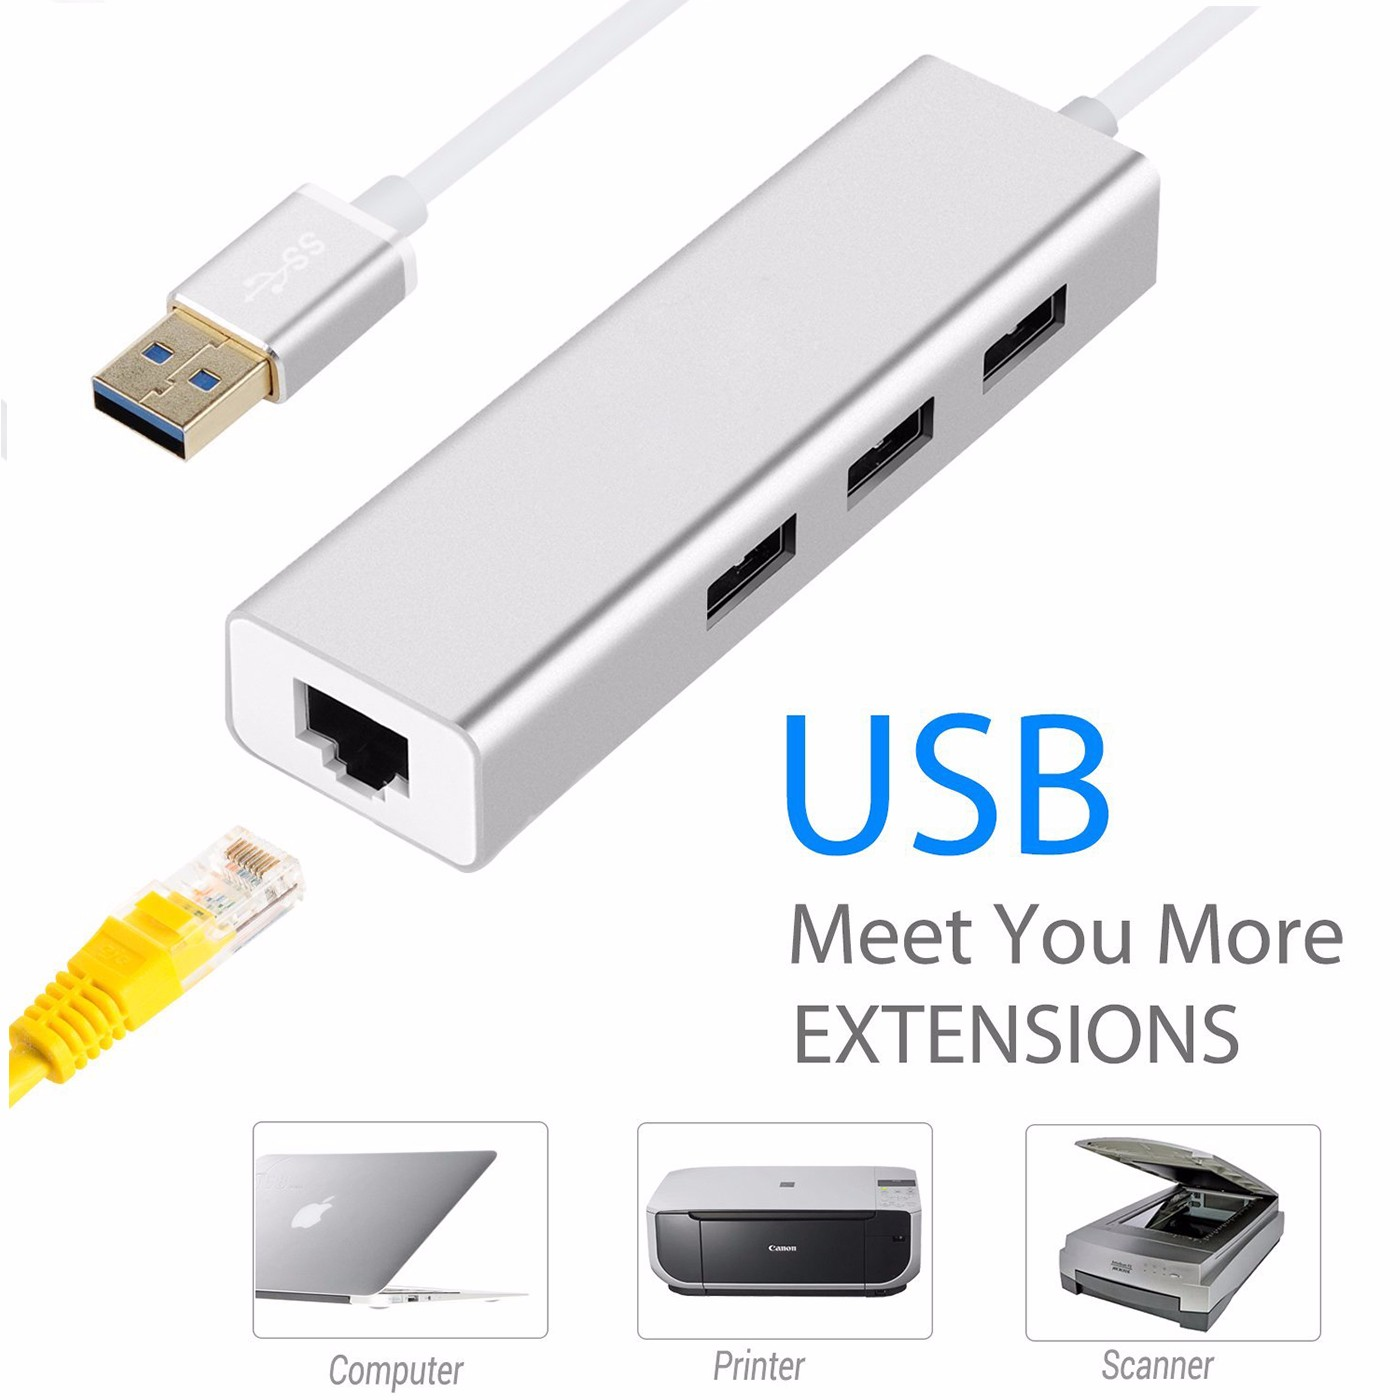 USB 3.0 Hub 3-Port to RJ45 Adapter Network Hub with 10/100/1000 Gigabit Ethernet Connector Extender for MacBook Microsoft Surface Chromebook